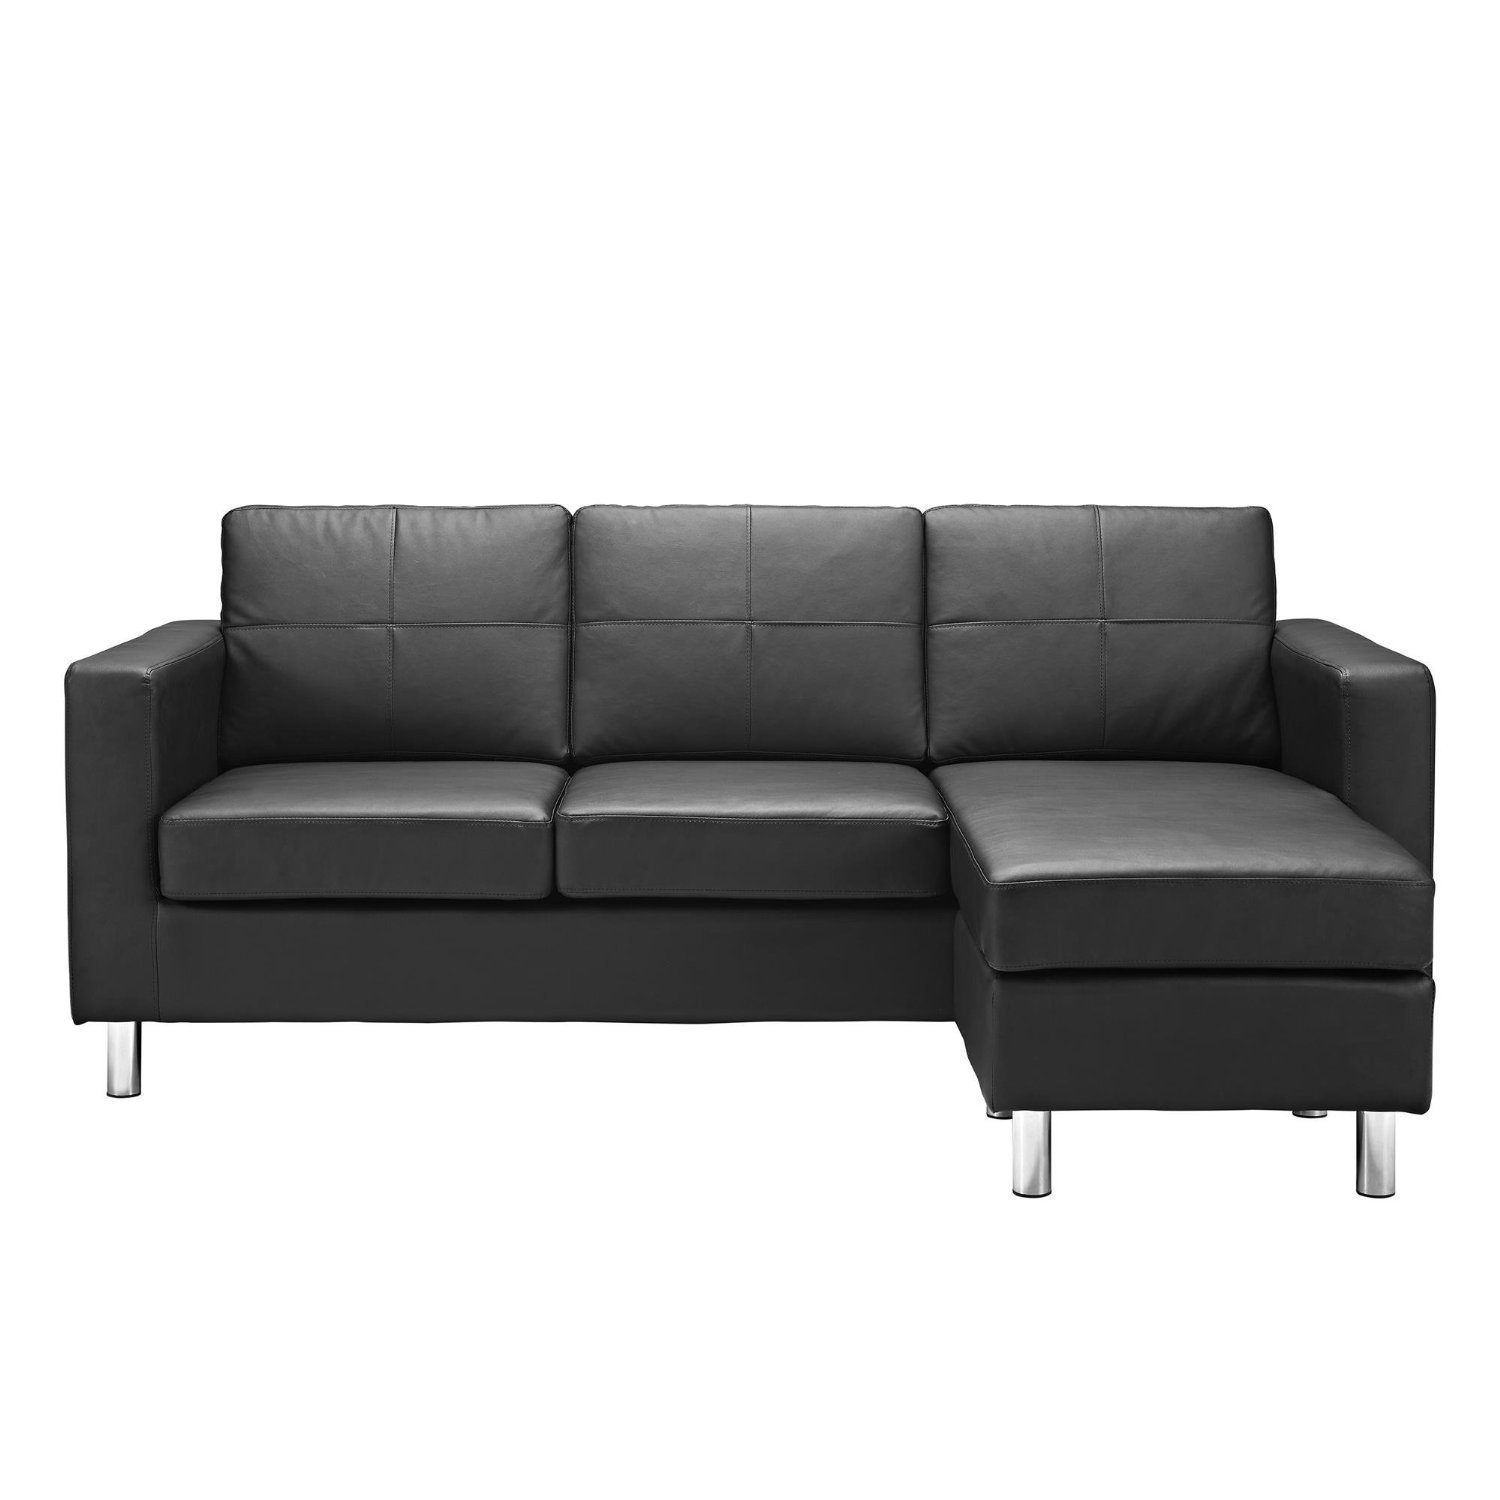 Black Modern Bonded Leather Sectional Sofa - Small Space ...